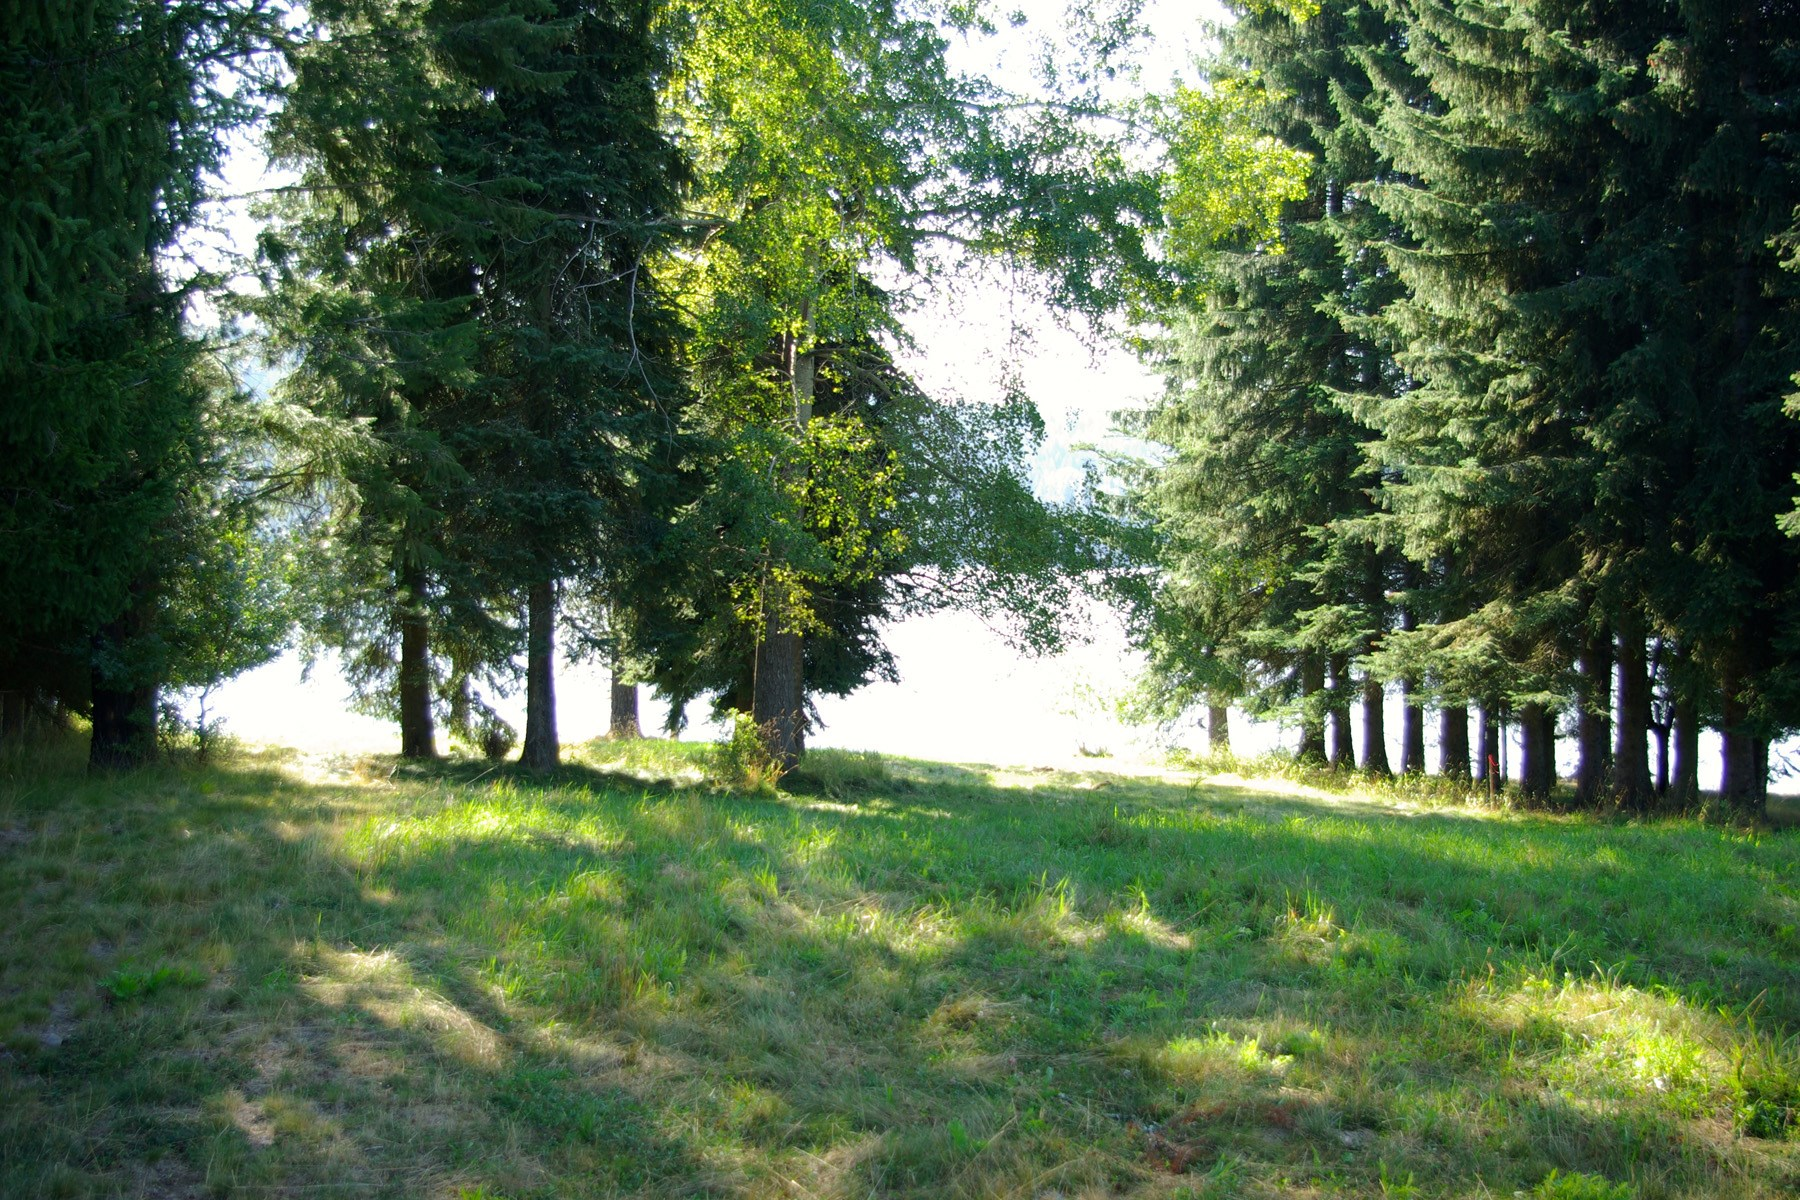 Land for Sale at Your own private sandy beach on Lake Cocolalla, Lot 1 Lot 1 Sandy Beach Ln, Cocolalla, Idaho, 83813 United States